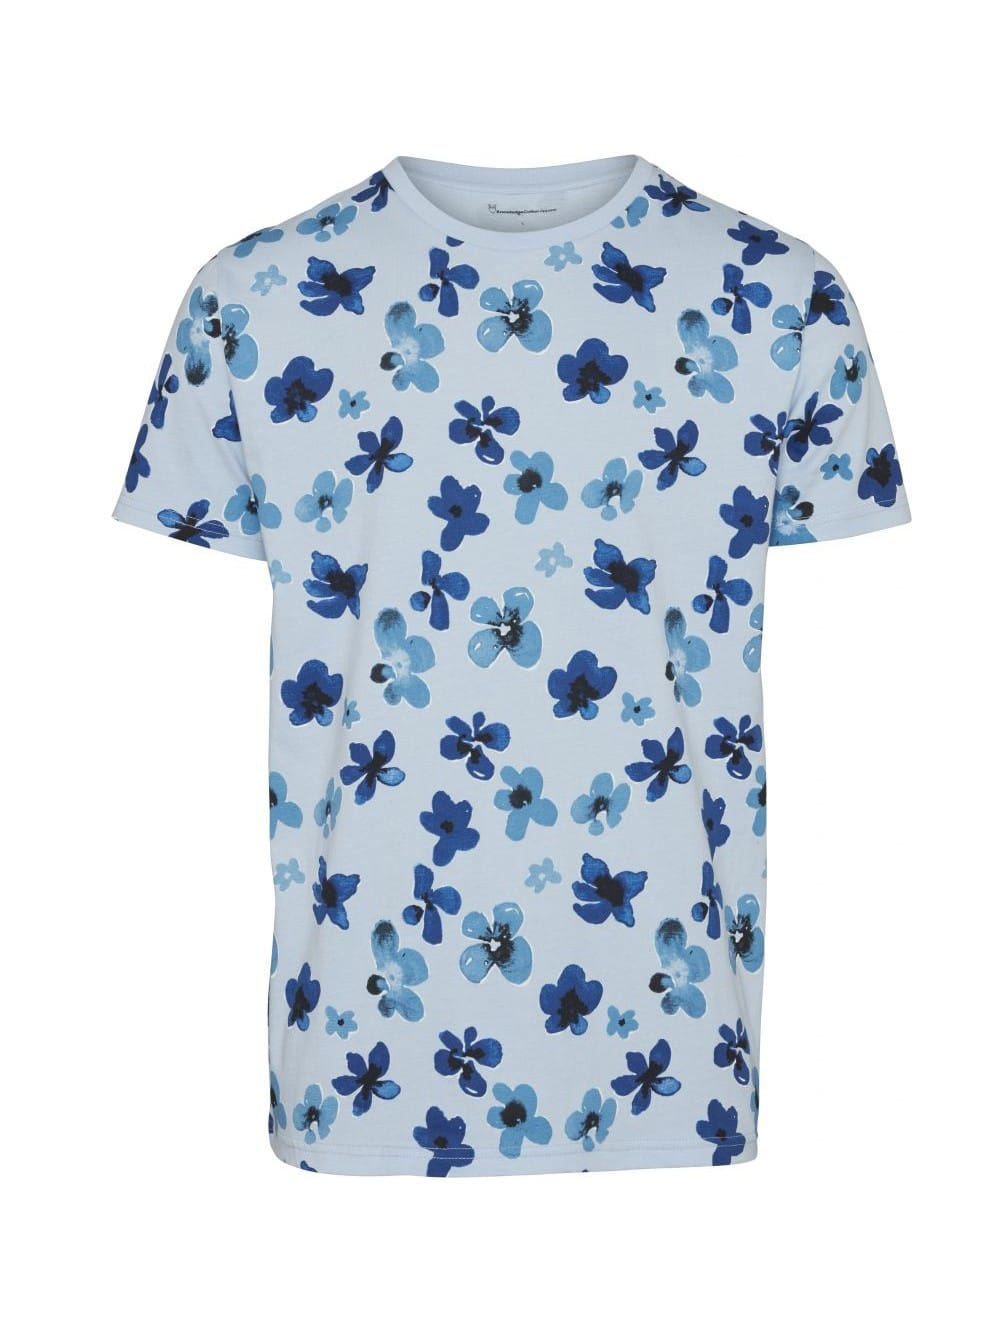 Flowered organic cotton t-shirt